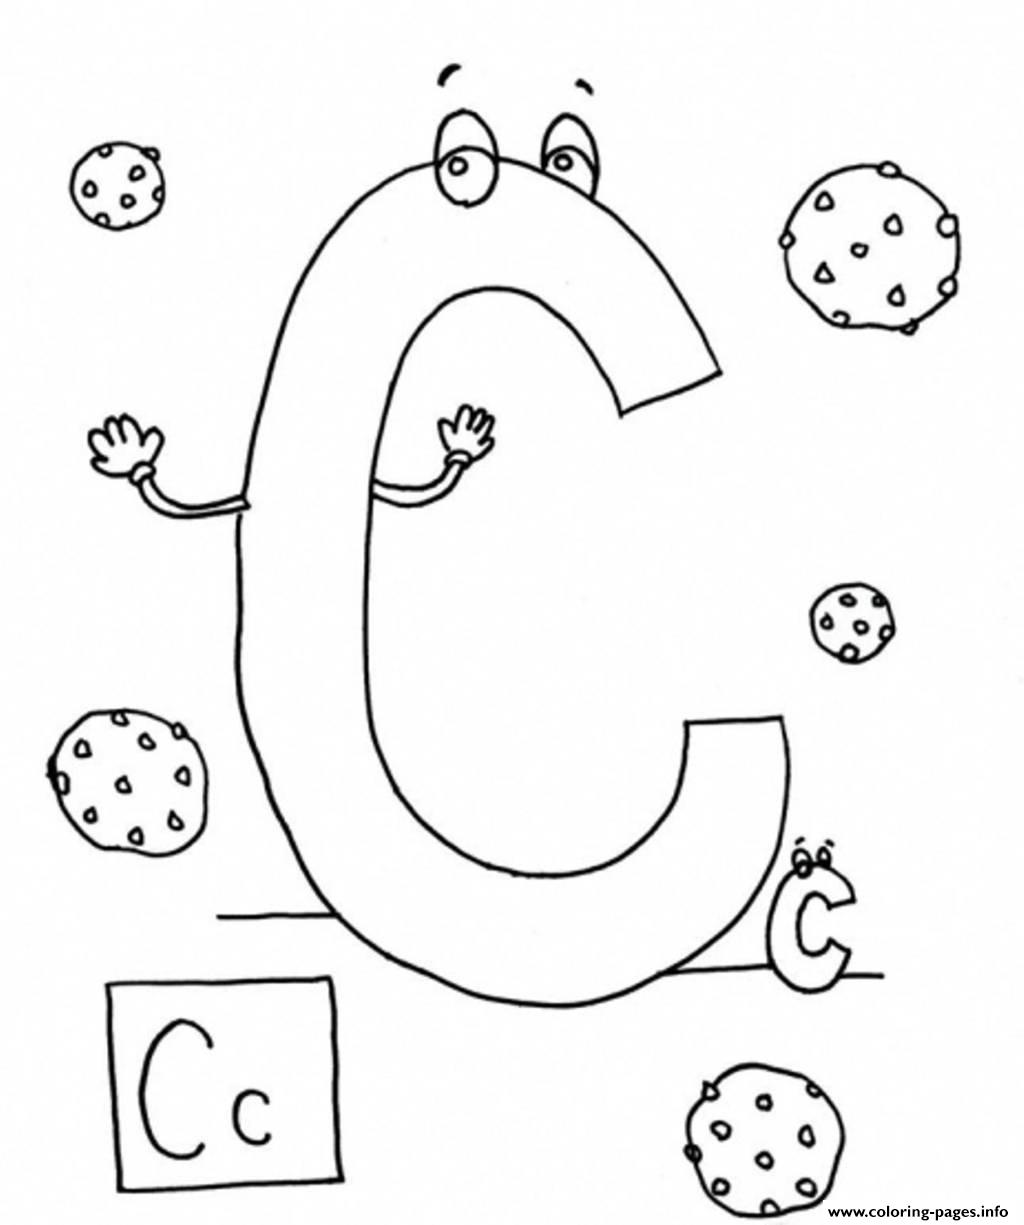 C is for cookies s alphabet3b23 coloring pages printable